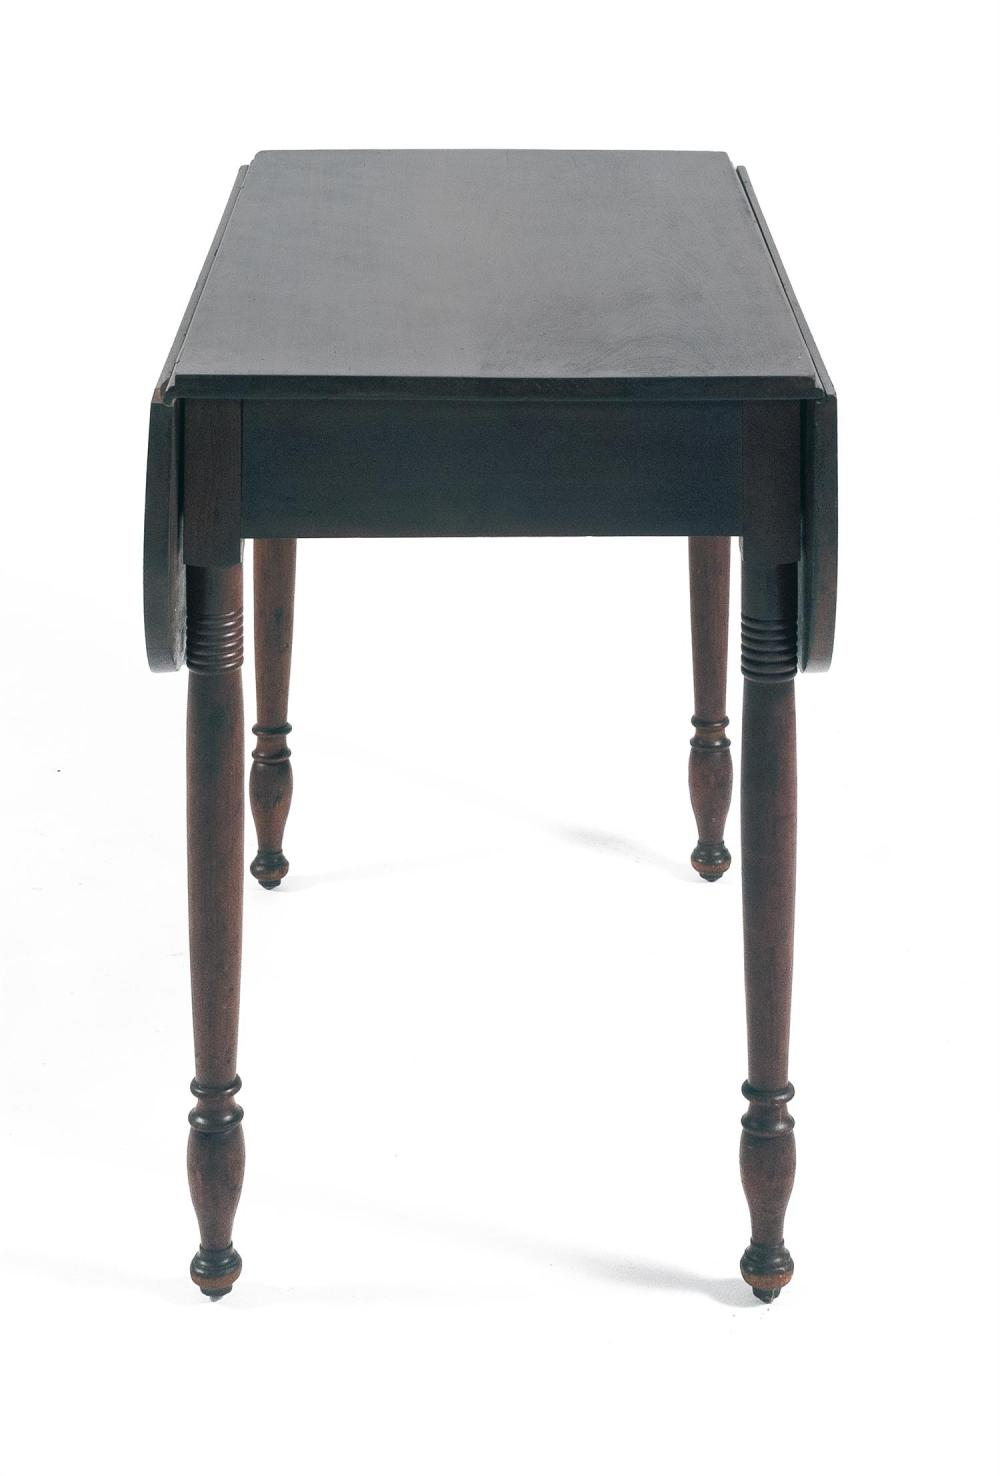 SHERATON PEMBROKE TABLE In cherry. Single drawer at one end of apron. Simple turned legs. Height 29